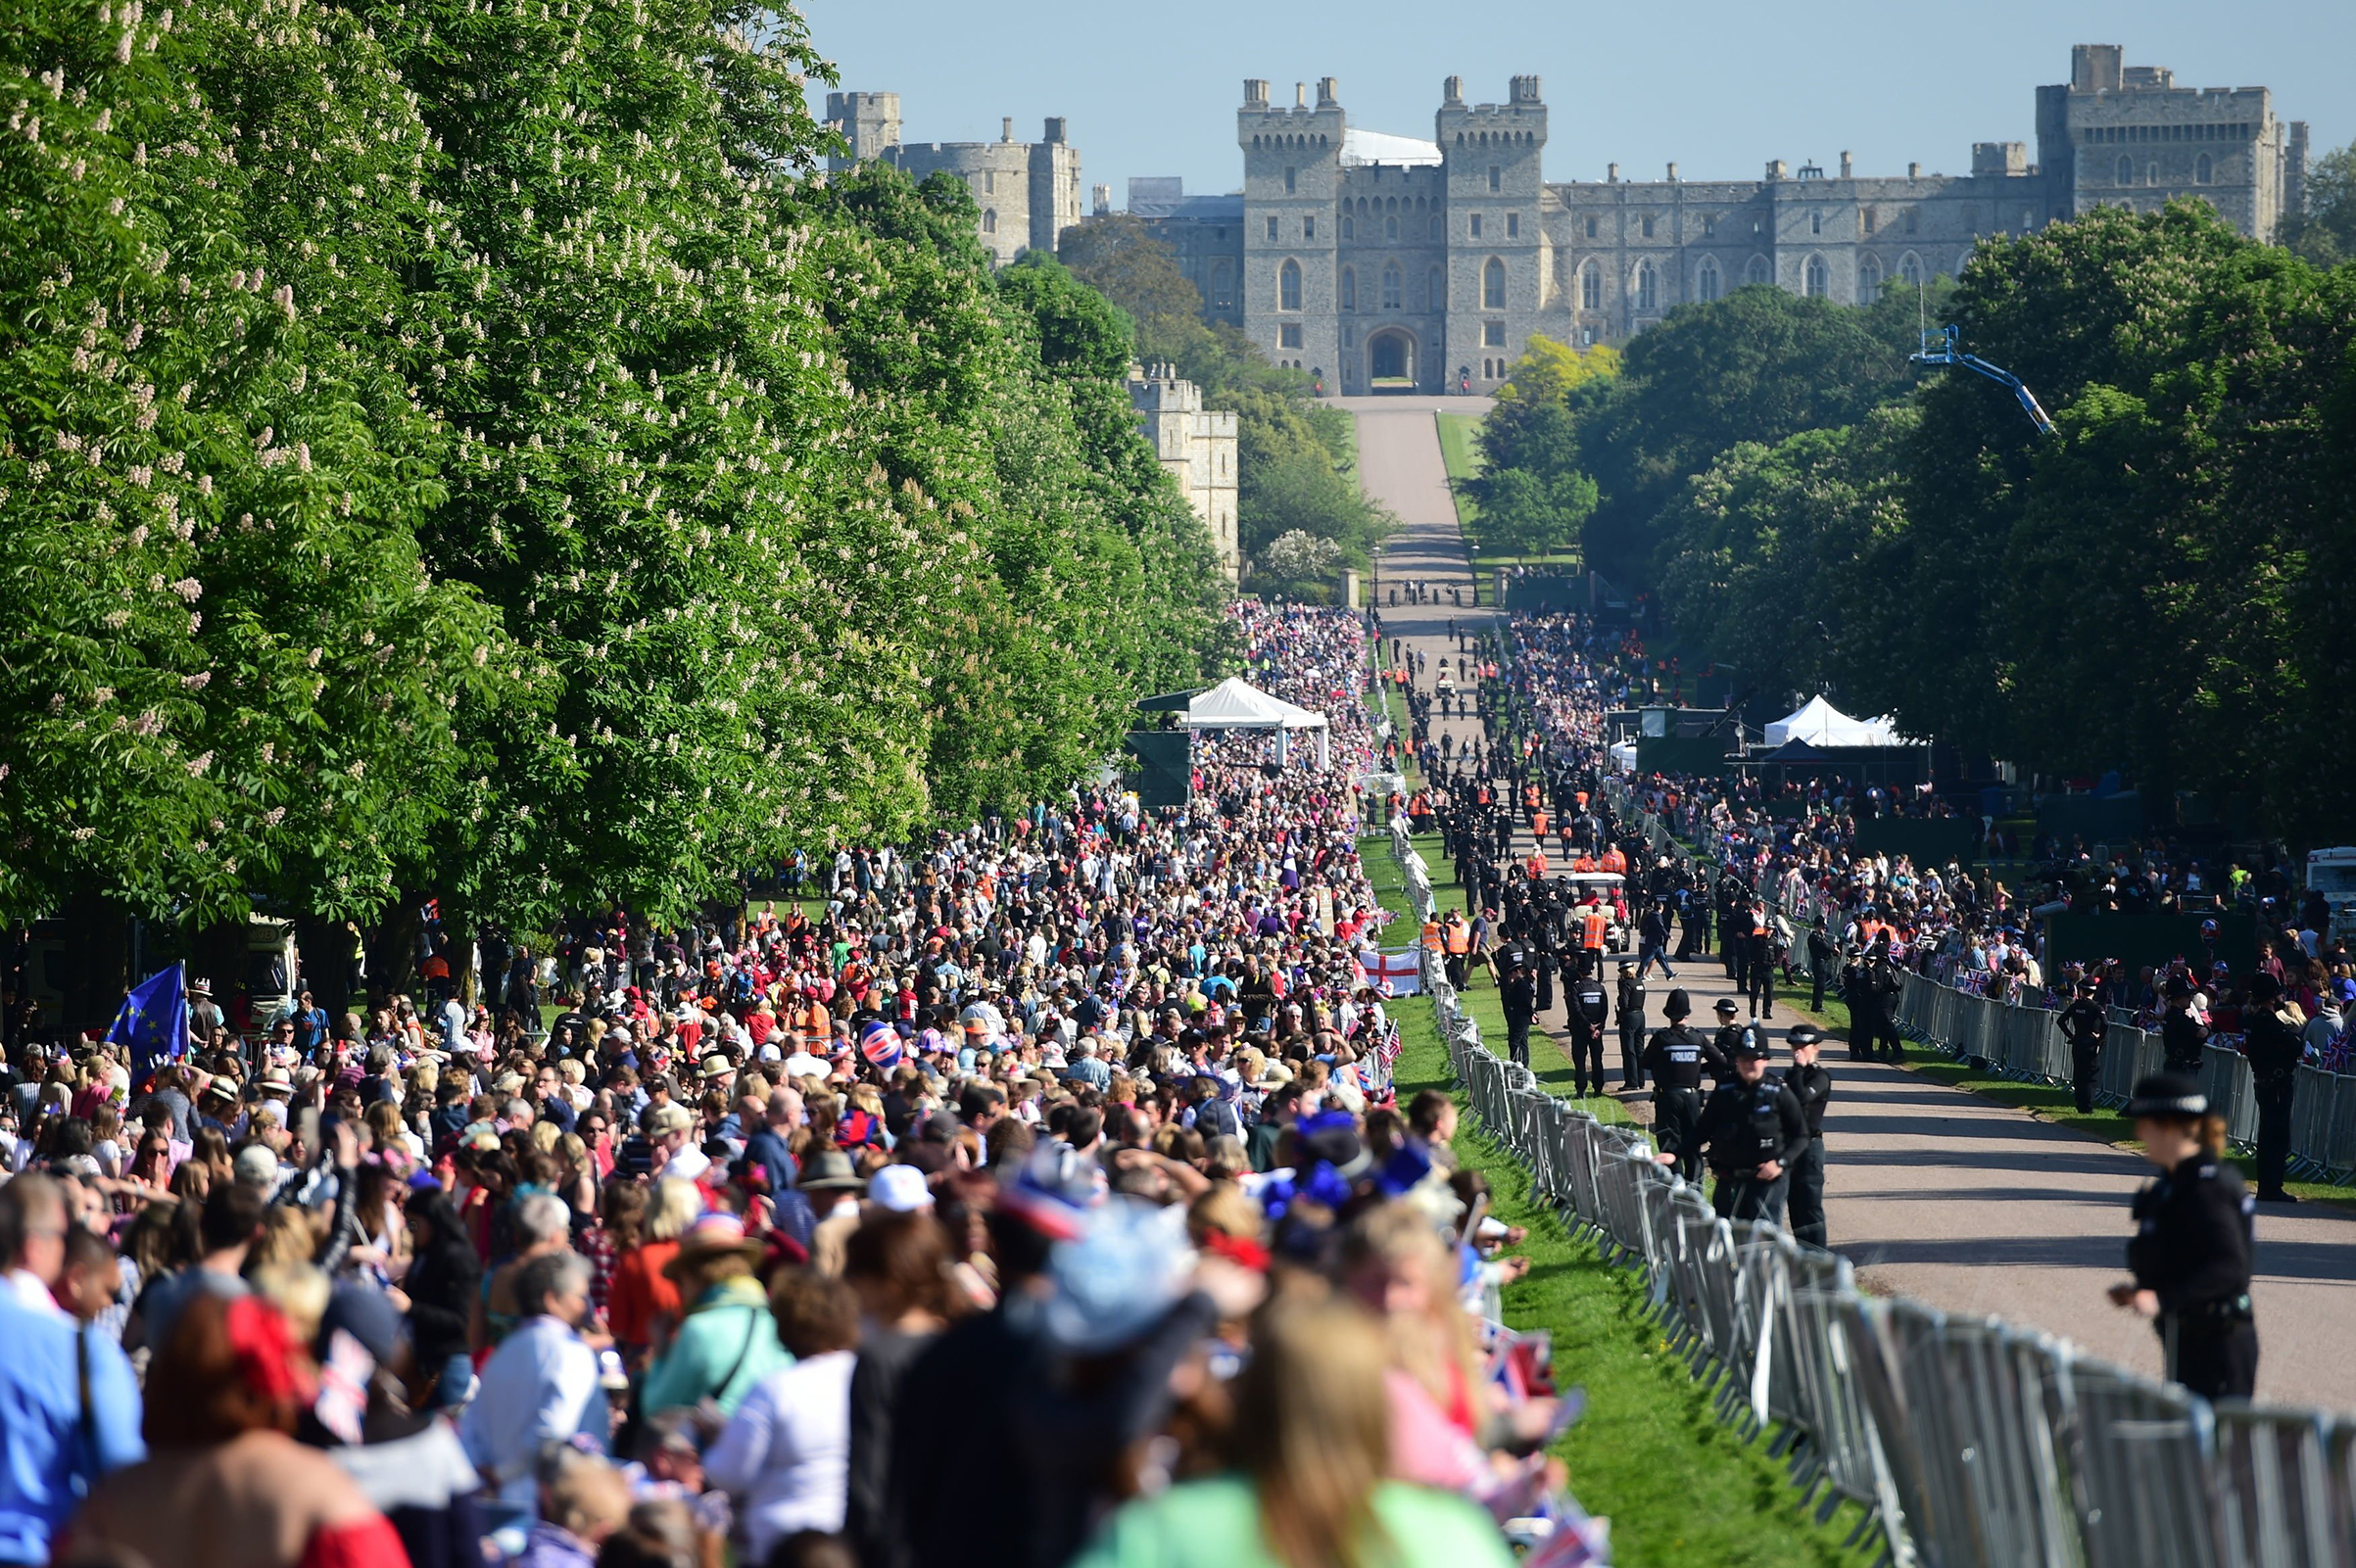 Royal wedding fans line the Long Walk in Windsor ahead of the wedding of Prince Harry and Meghan Markle, May 19, 2018.